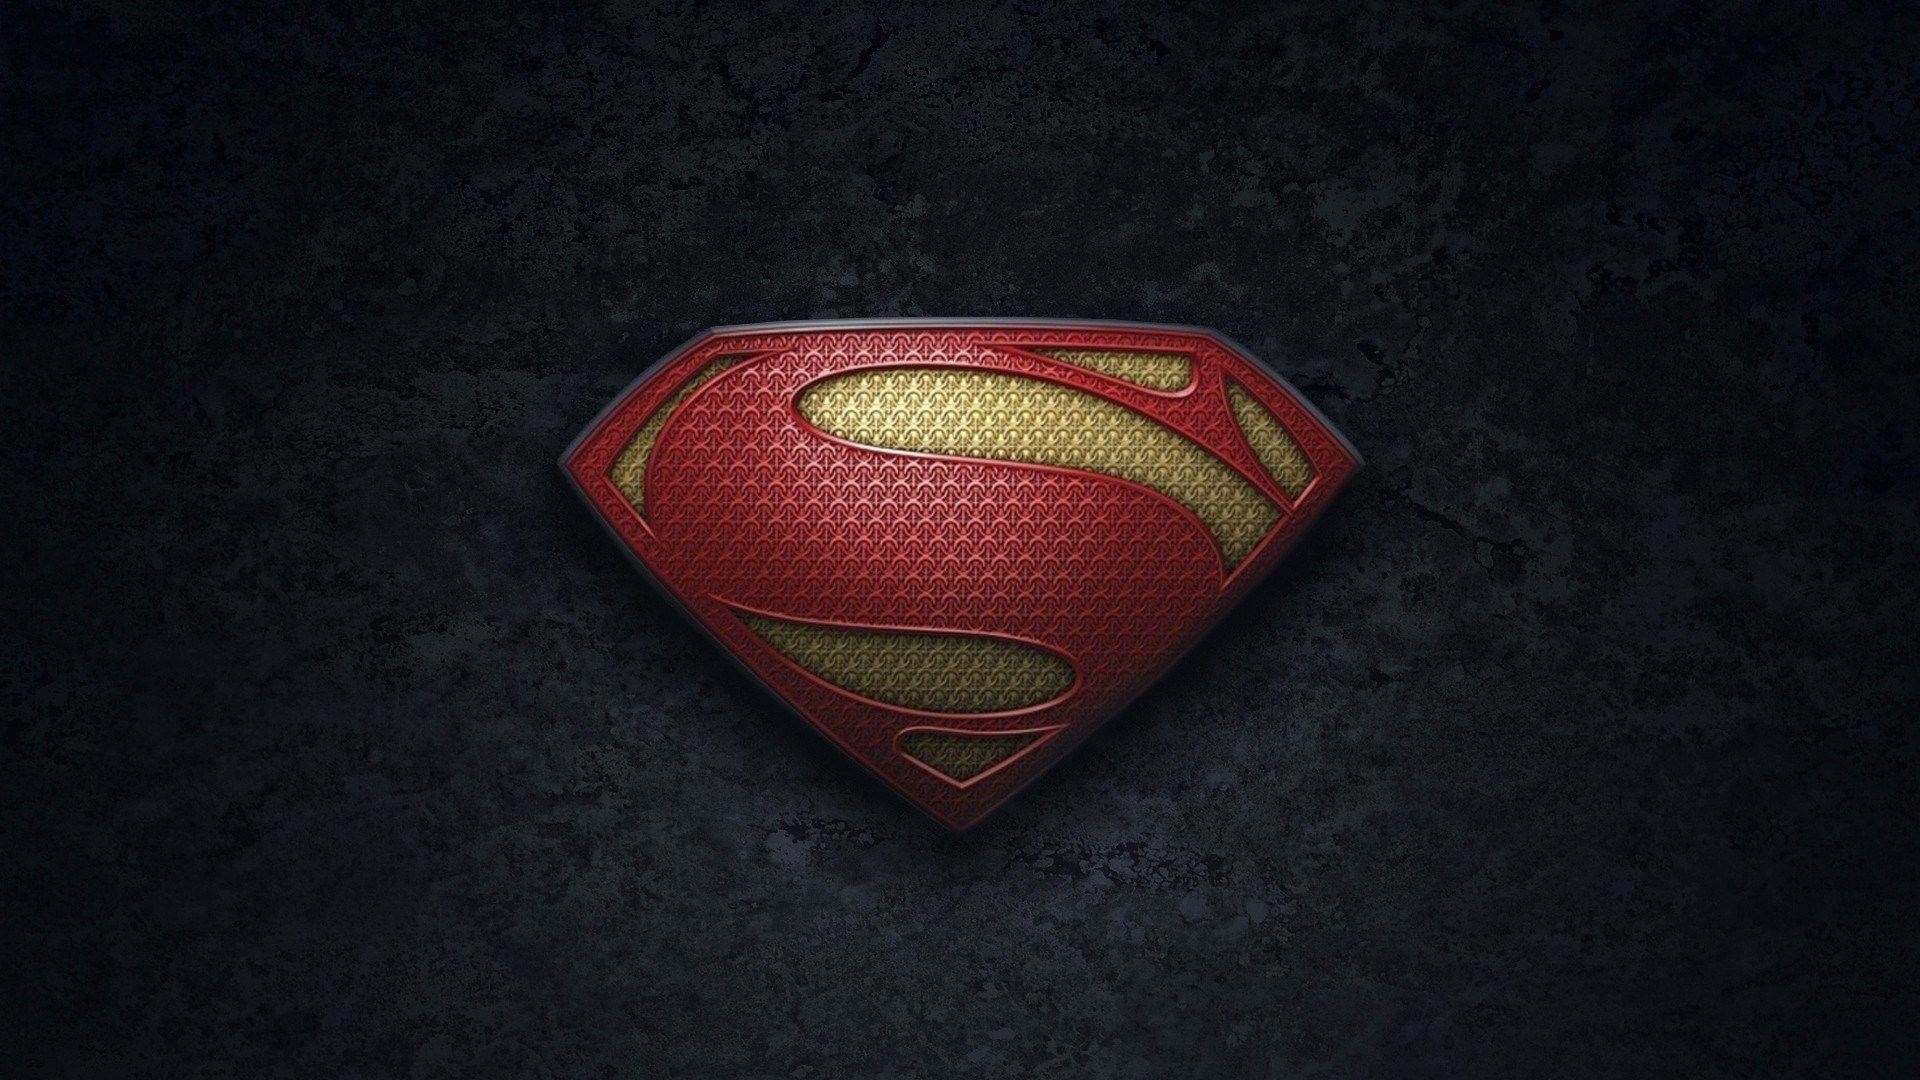 Iphone Hd Wallpapers: Superman IPhone Wallpaper HD (71+ Images